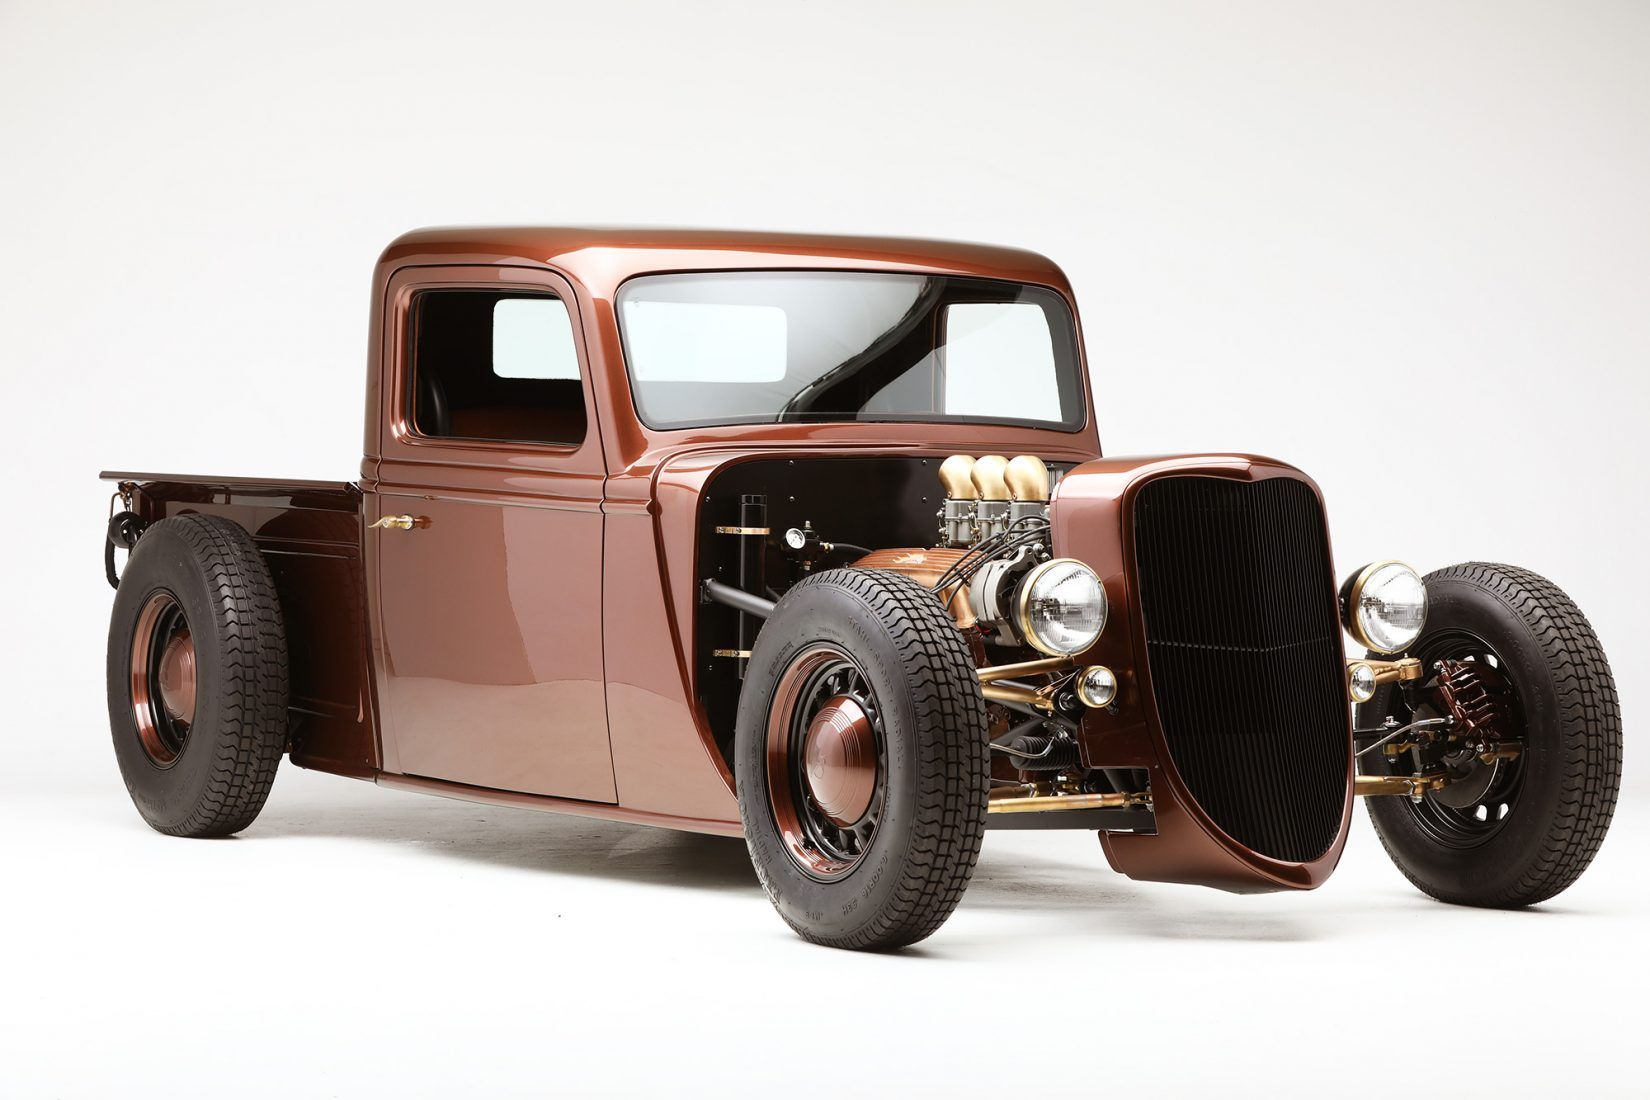 FACTORY FIVE RACING° 1935 FORD Pick Up Truck